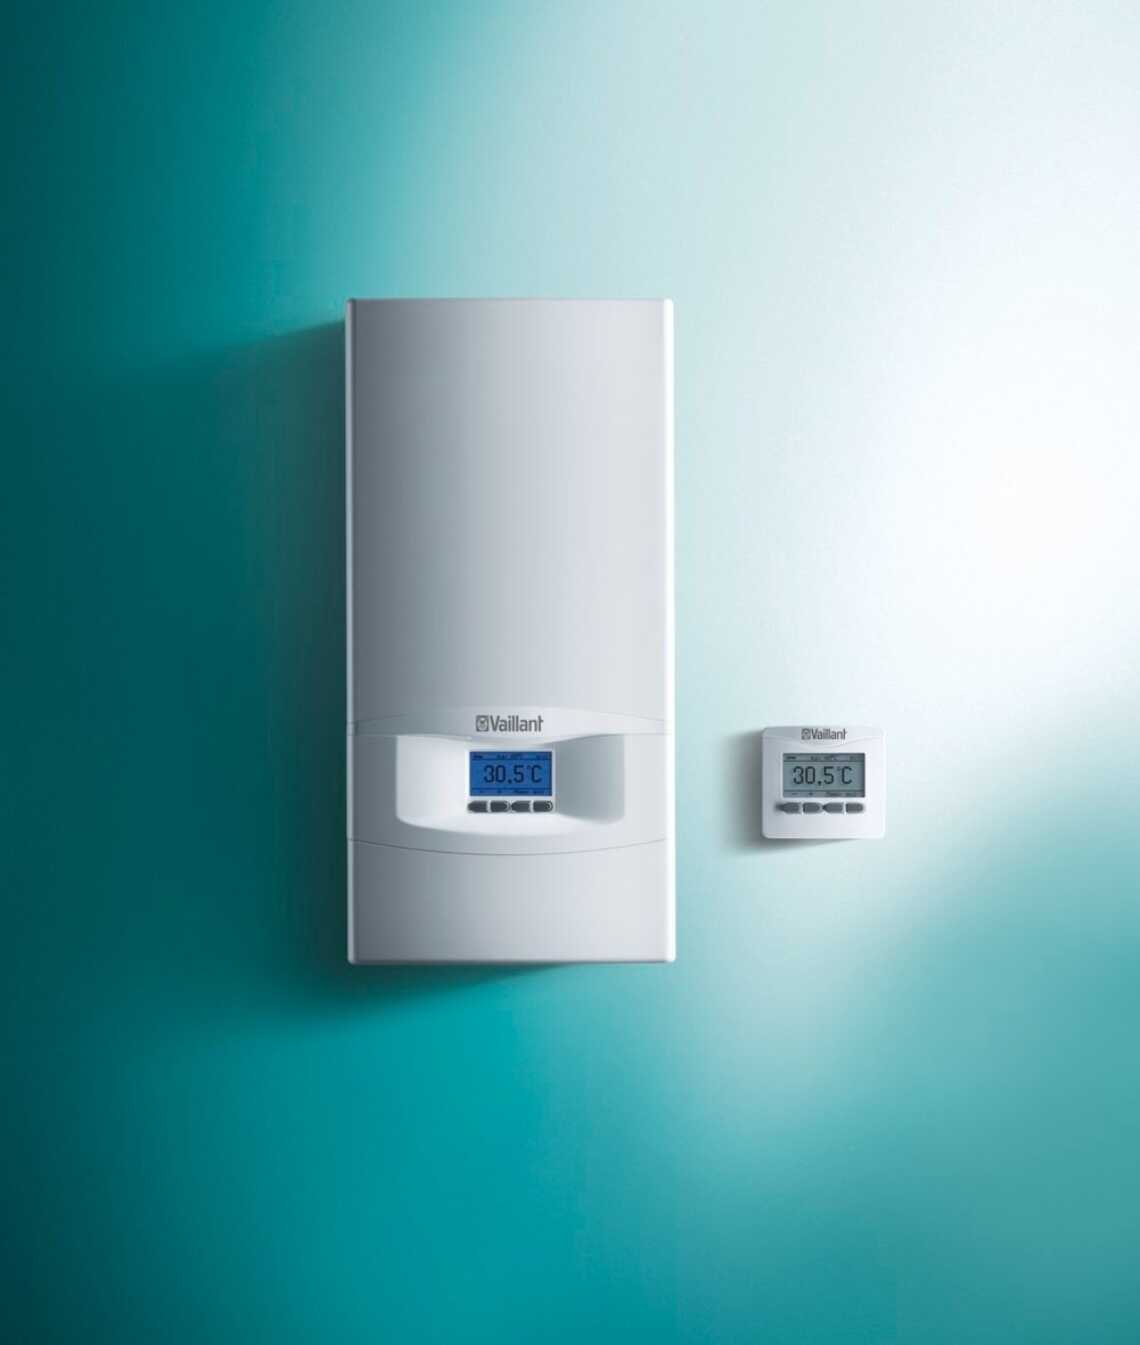 Durchlauferhitzer Electronicved Exclusiv Infos Vaillant